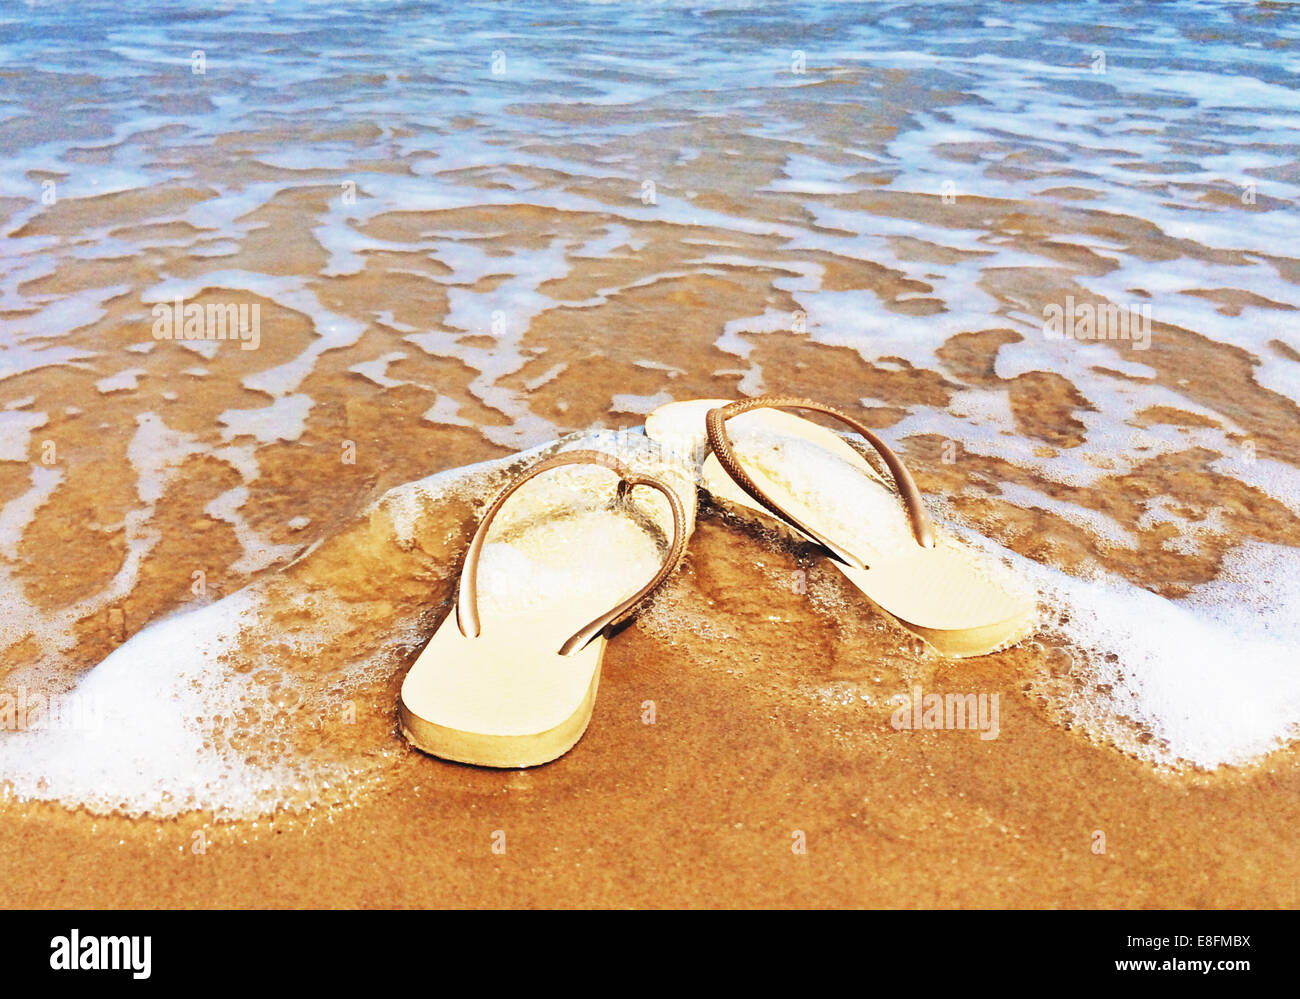 Flip flops on beach in surf - Stock Image